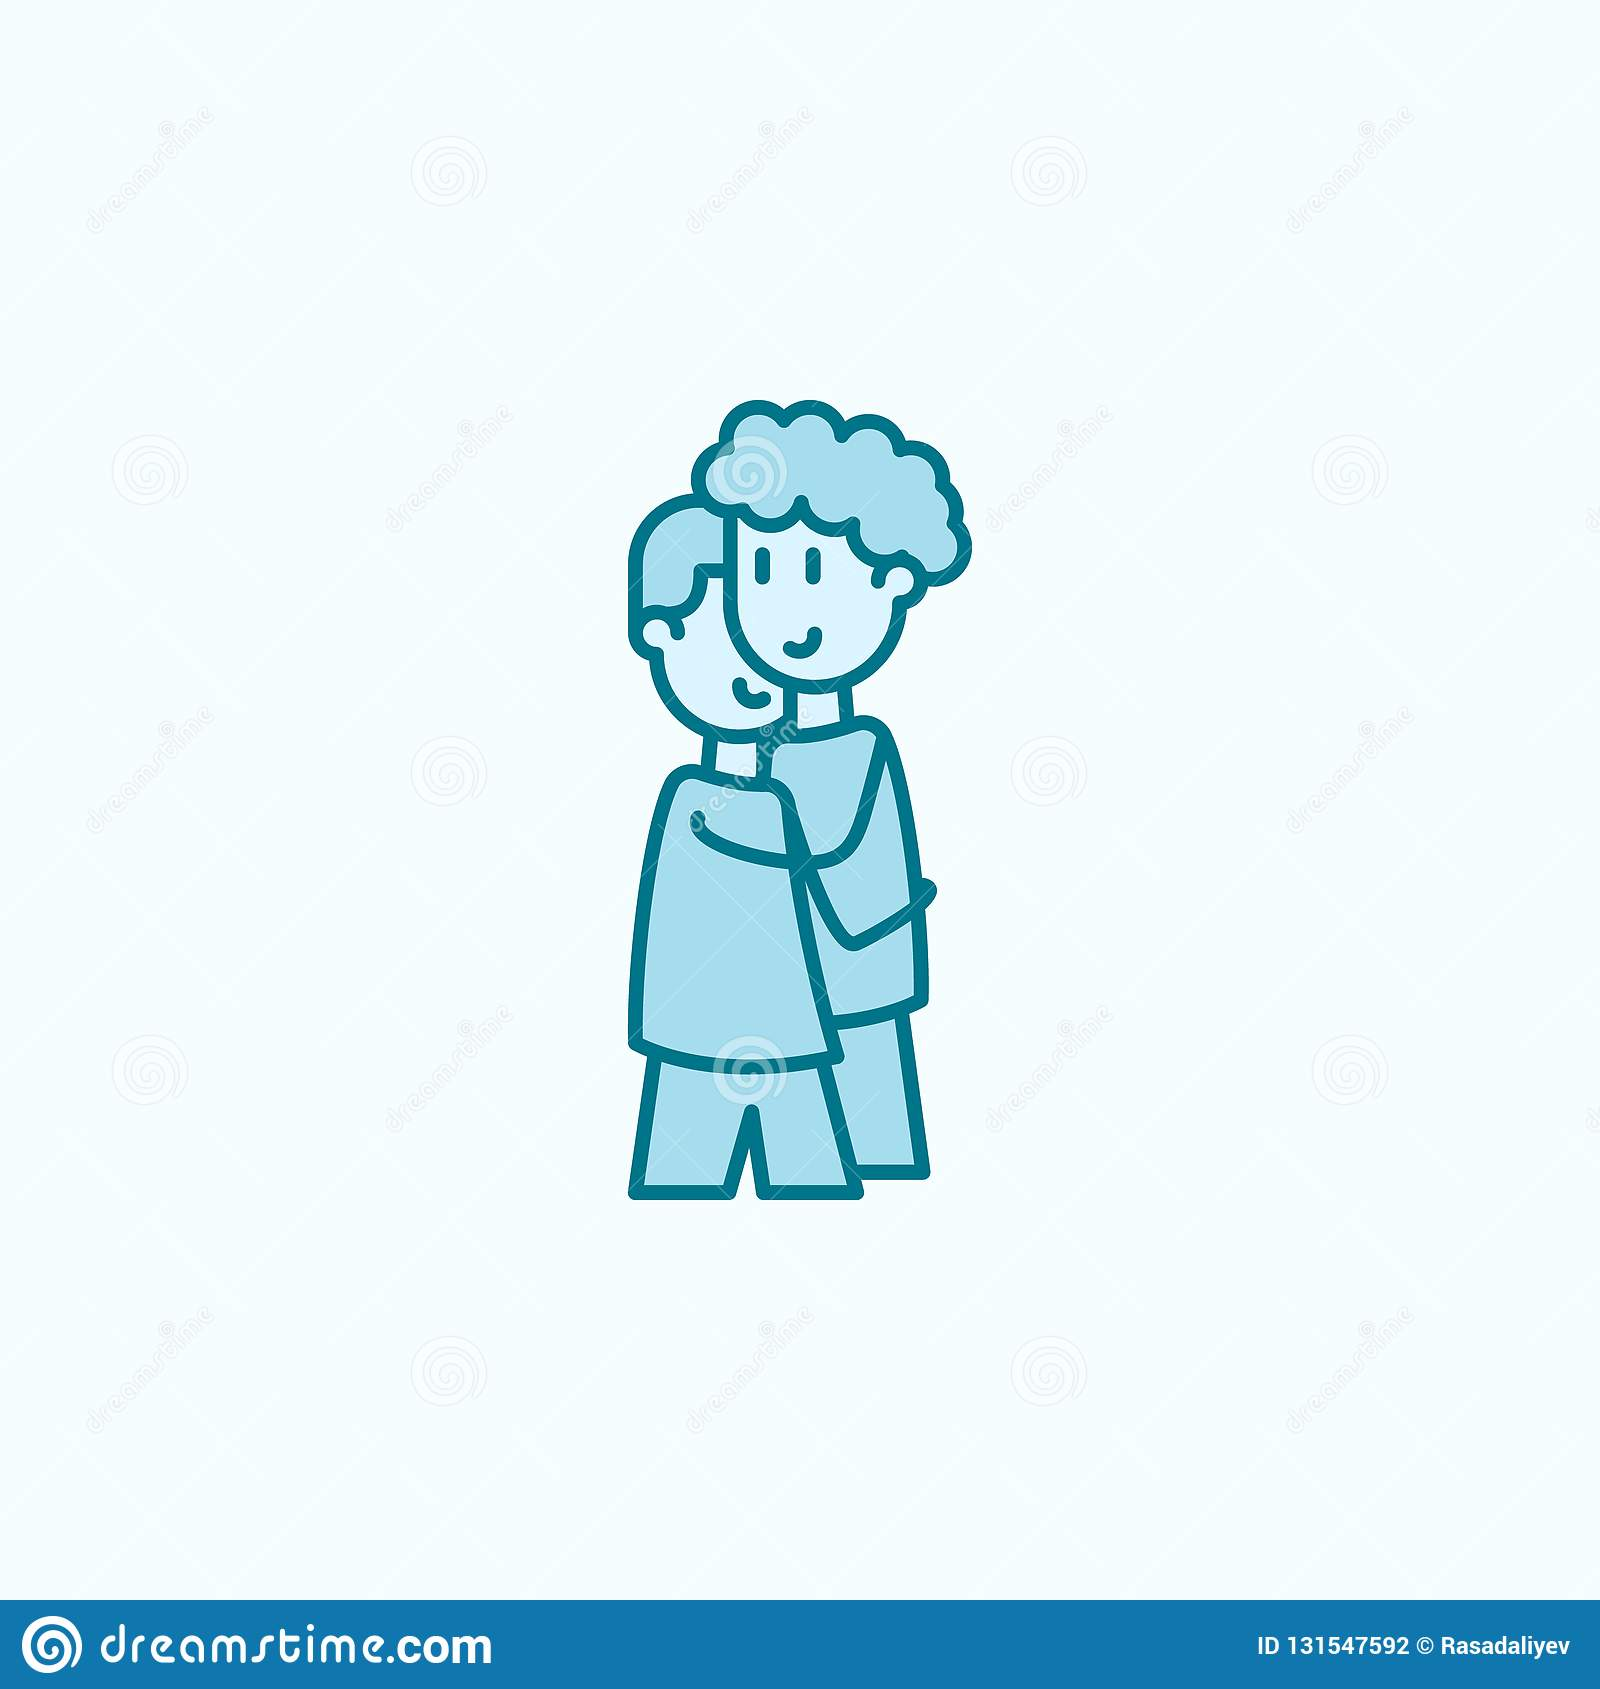 Boys Friends 2 Colored Line Icon Simple Colored Element Illustration Boys Friends Outline Symbol Design From Friendship Set On Stock Illustration Illustration Of Student Smile 131547592